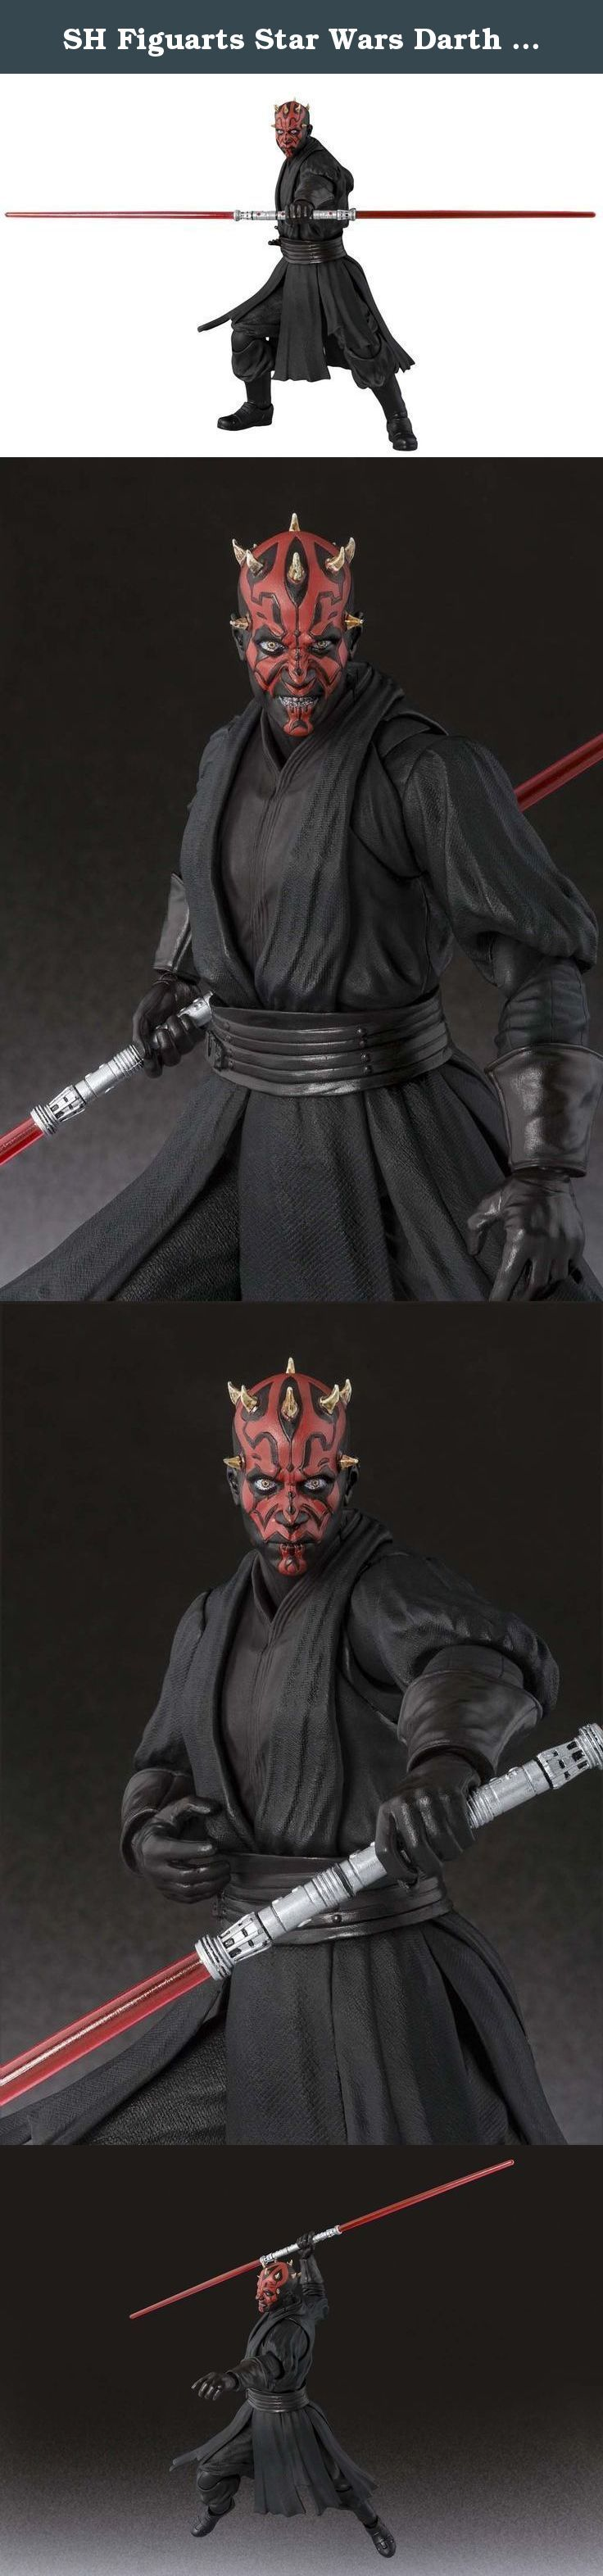 SH Figuarts Star Wars Darth Maul (Episode I) about 140mm ABS u0026 PVC painted action figure by Bandai. precisely reproduced. Comes with two parts of face expression.